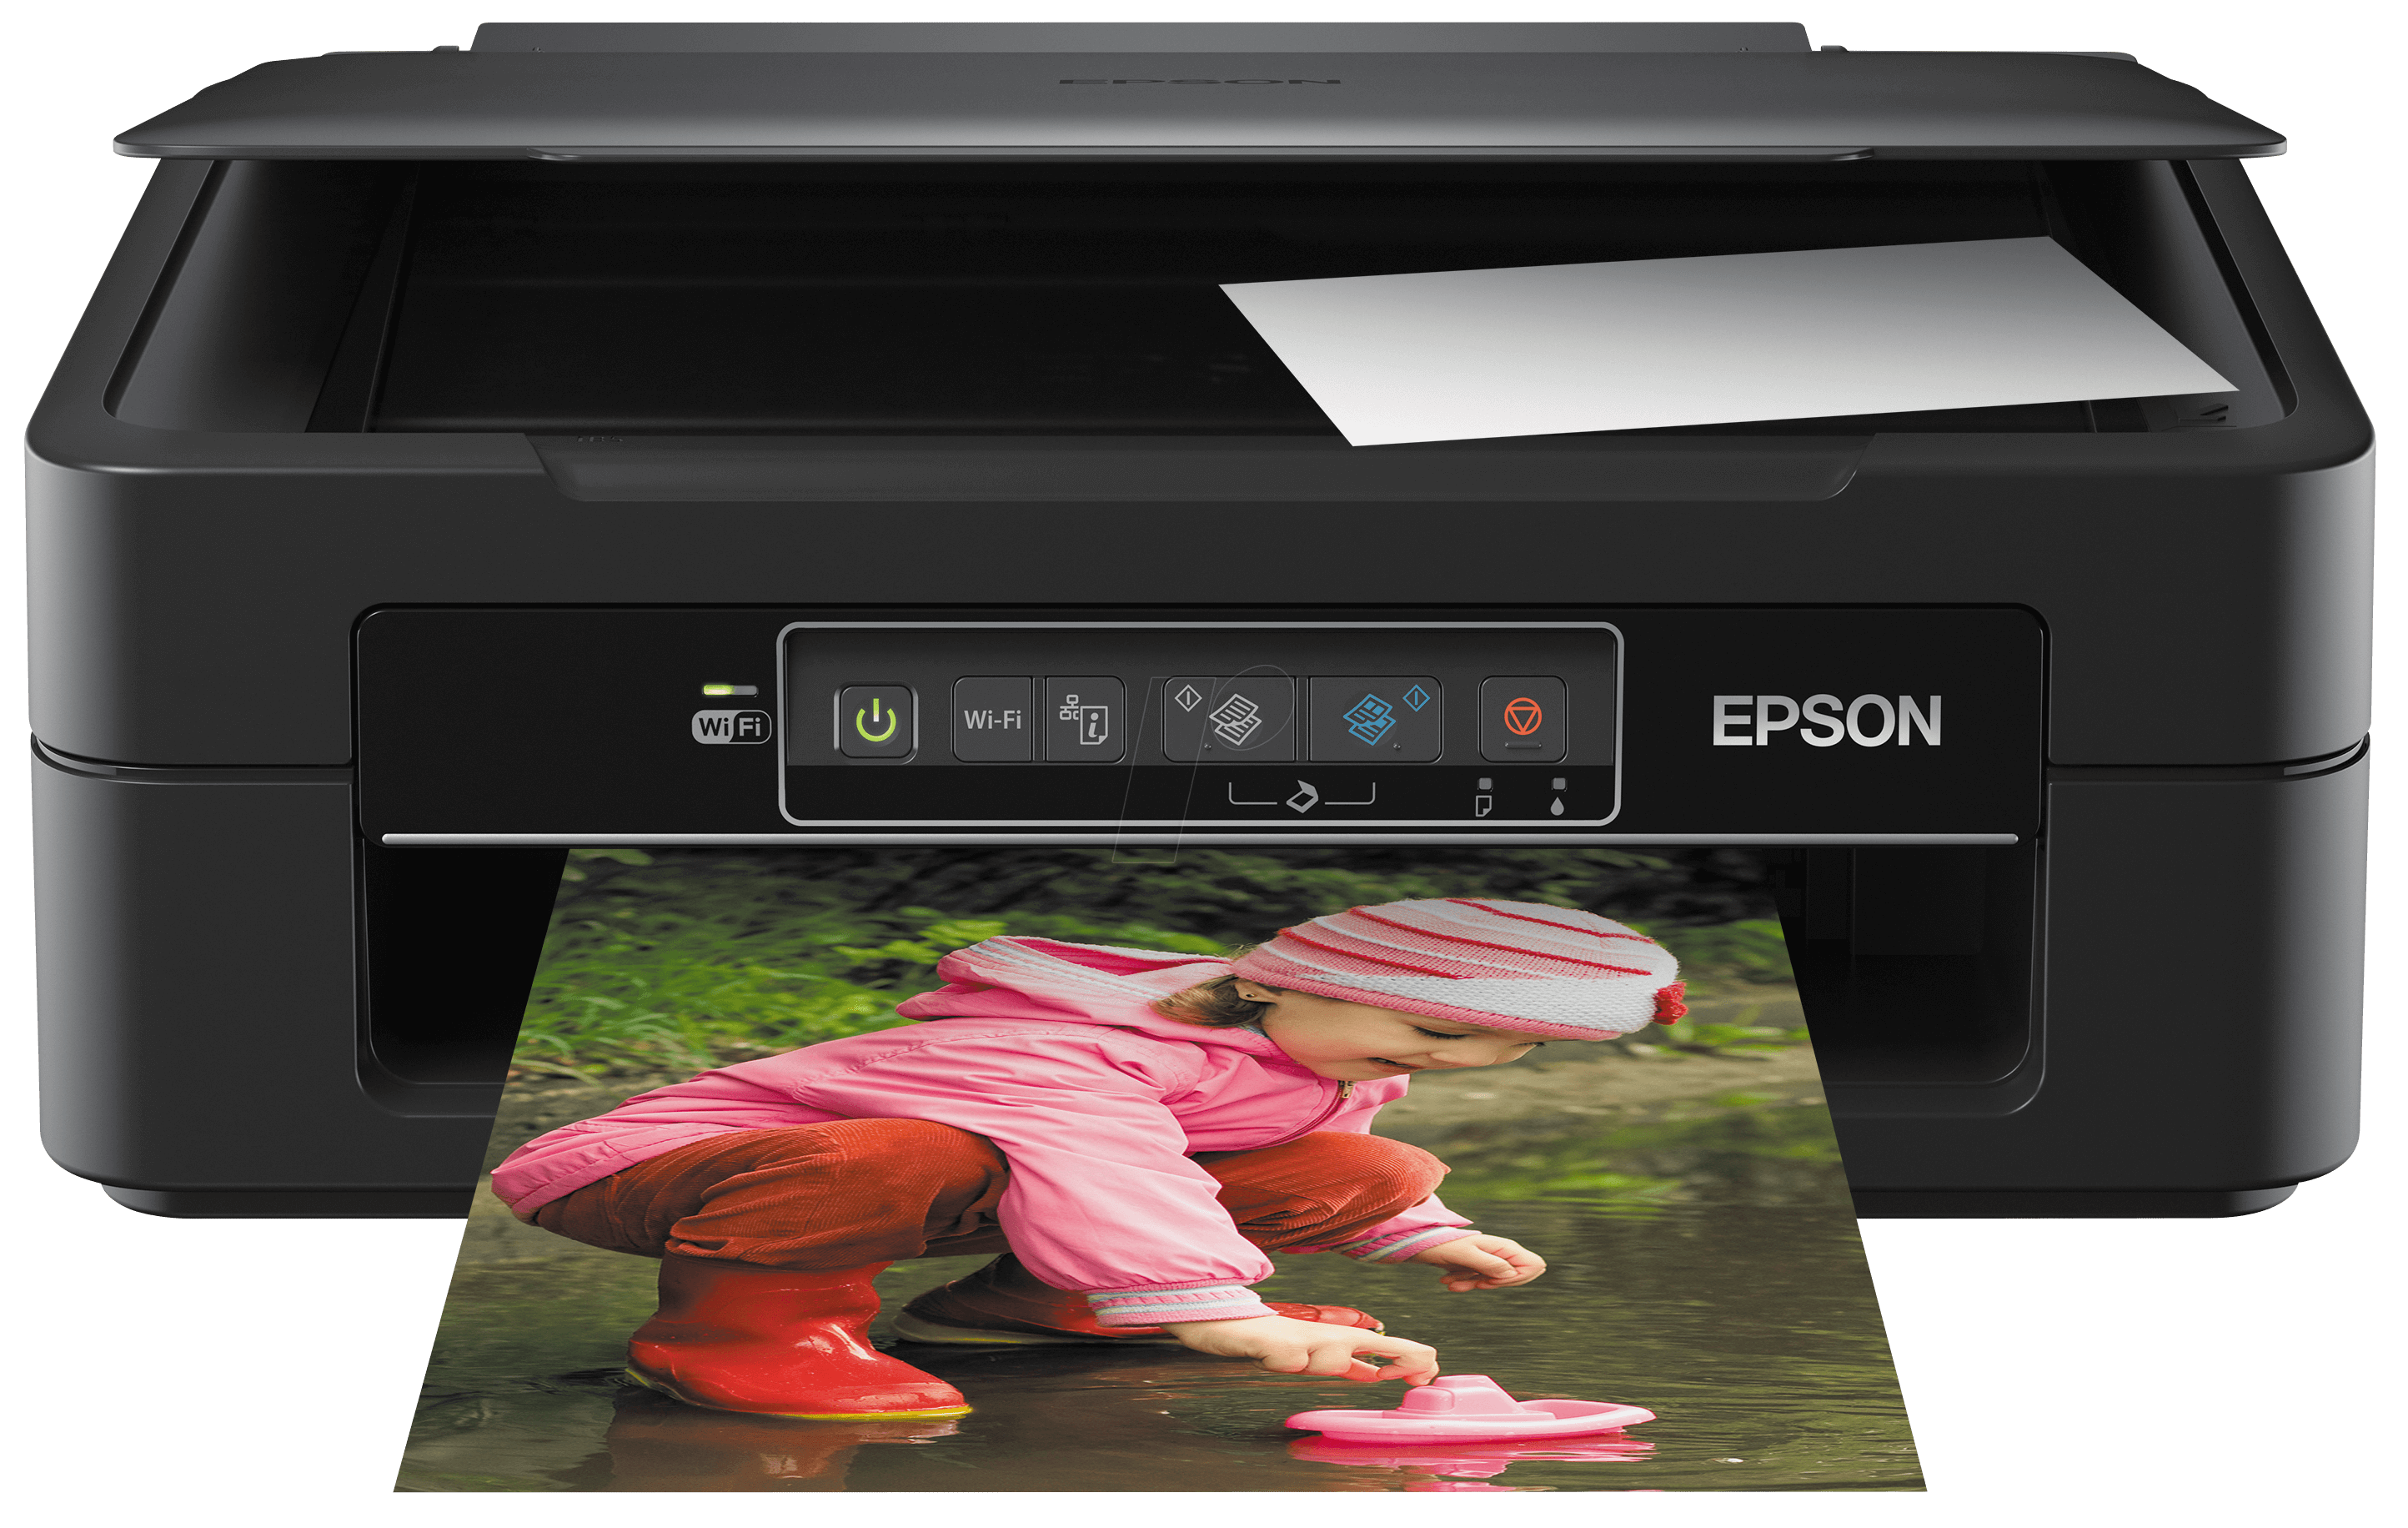 epson xp 245 3 in 1 mfp wi fi at reichelt elektronik. Black Bedroom Furniture Sets. Home Design Ideas